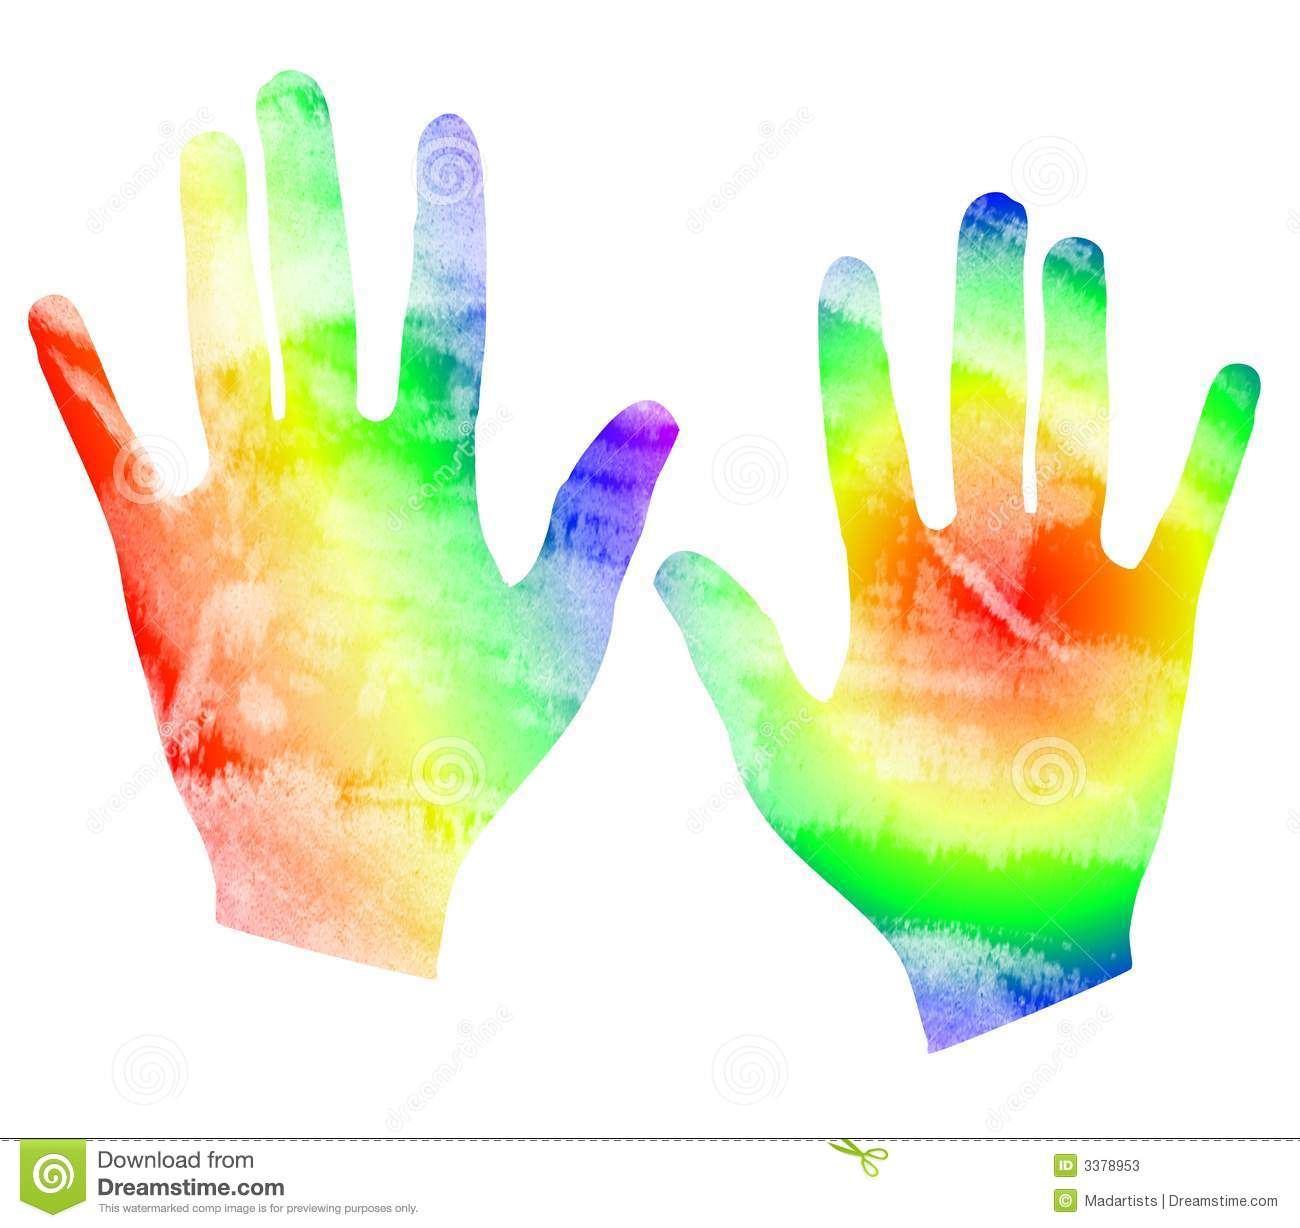 Colorful hand print clipart images for Watercolor paintings of hands